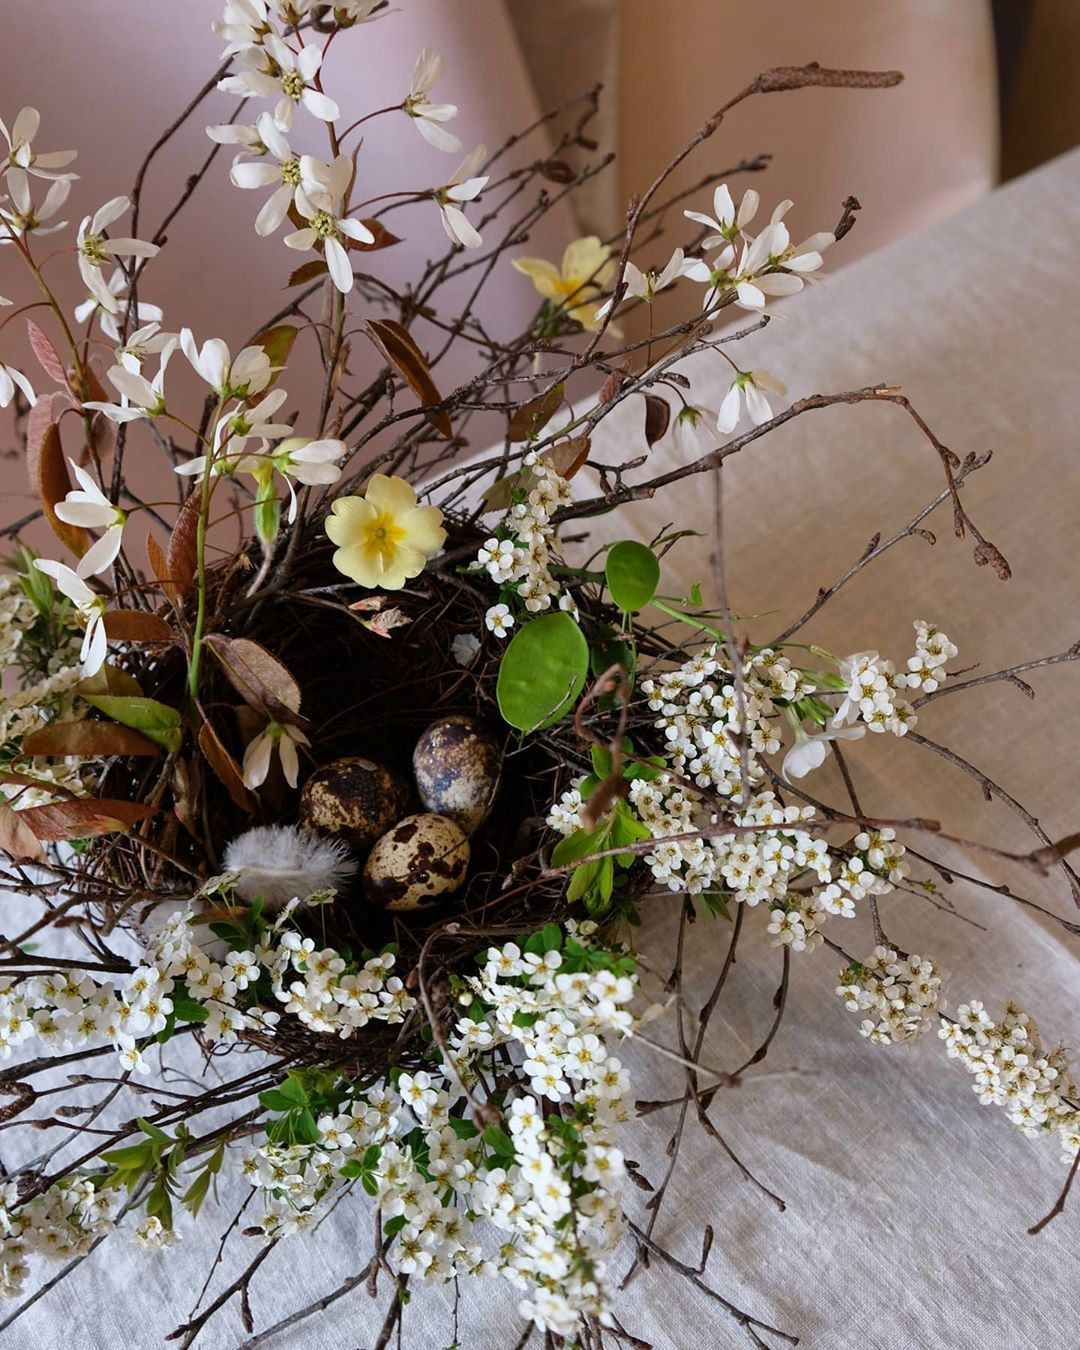 Kitten Grayson Flowers On Instagram Kgf Easter Nest Head To Our Highlights To Learn How To Make Your Own Blossom Nest In 4 Ste In 2020 Easter Nests Flowers Blossom